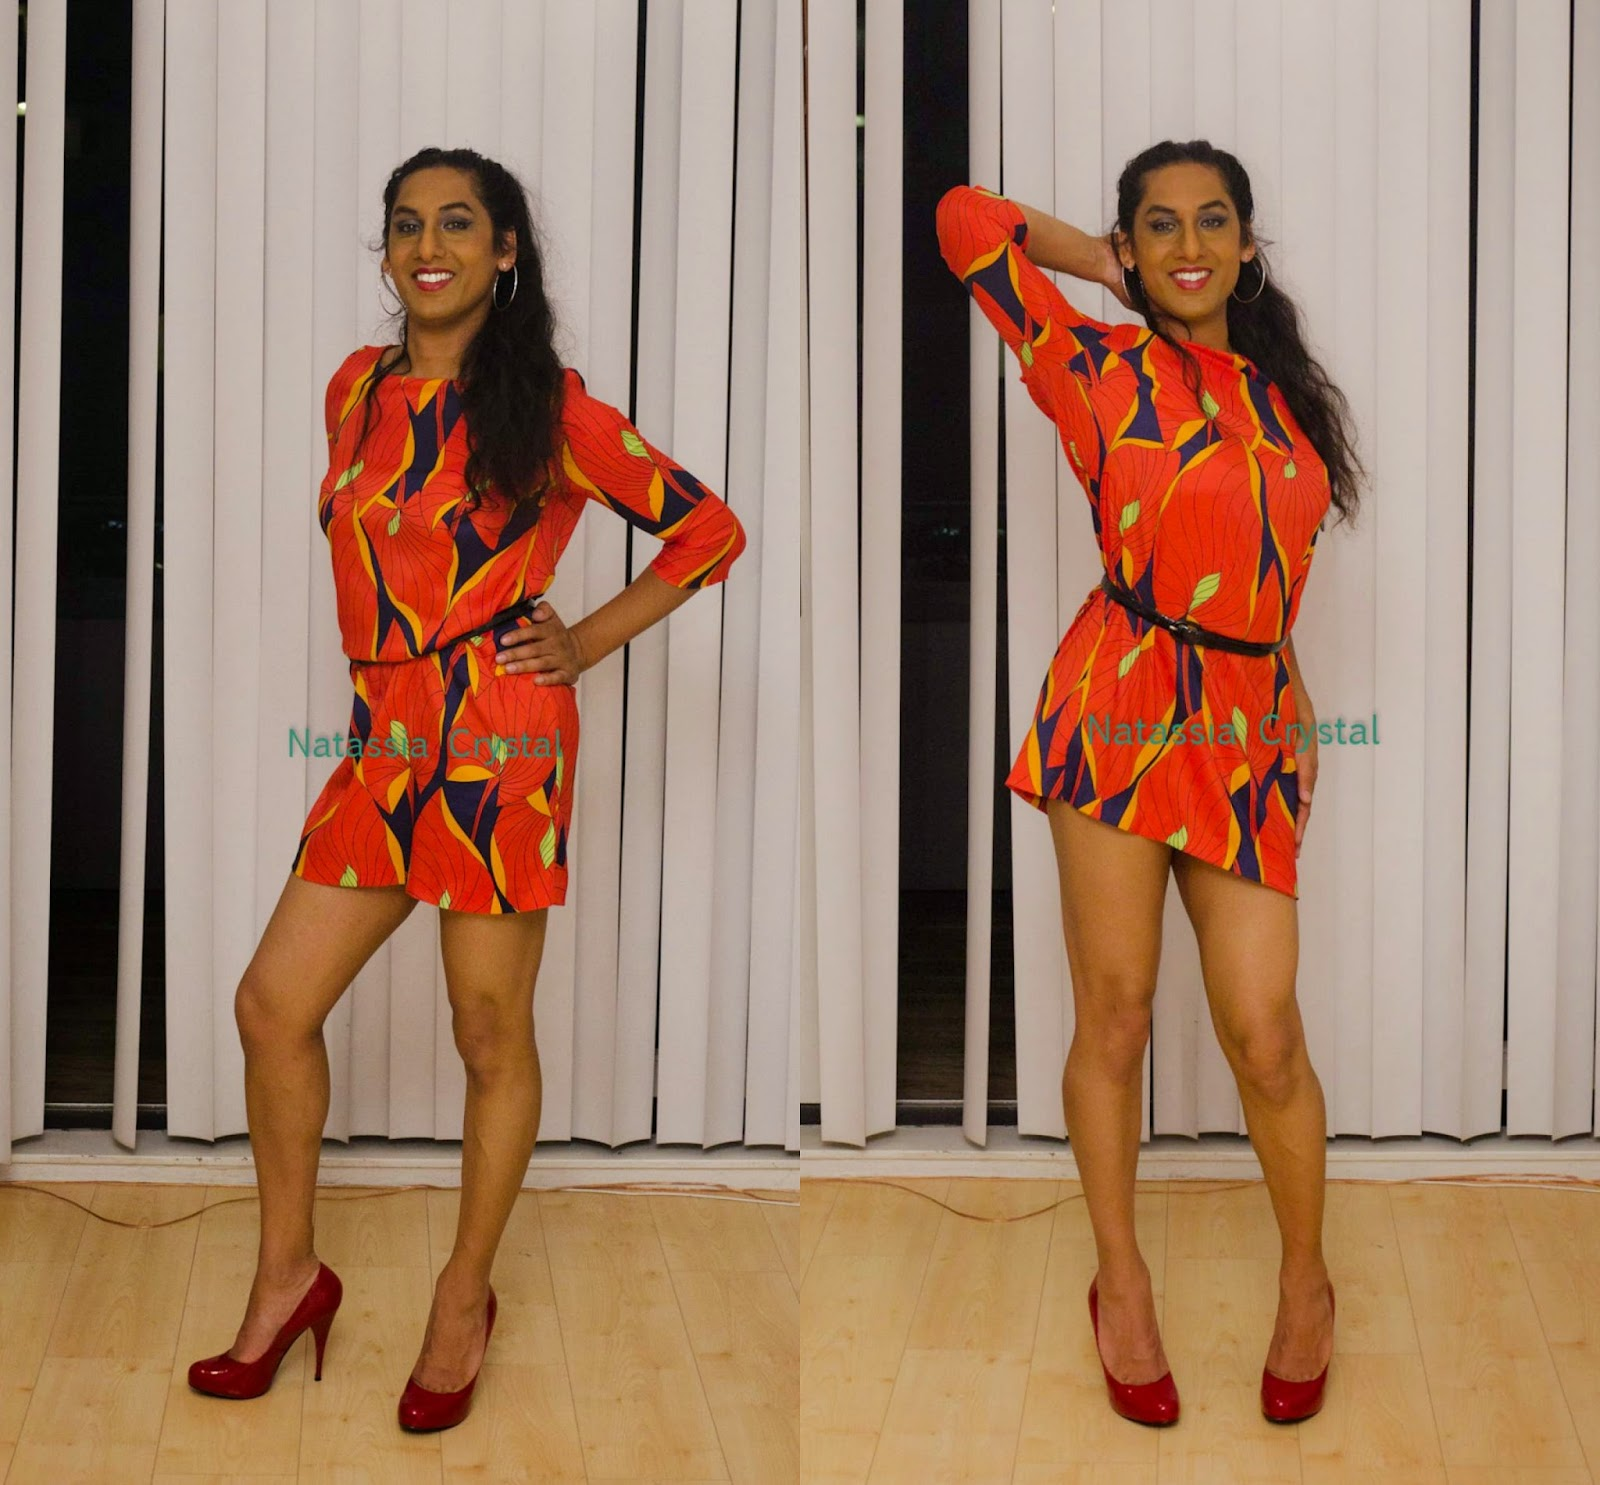 Natassia Crystal natcrys in groovy dress, red Steve Madden pumps